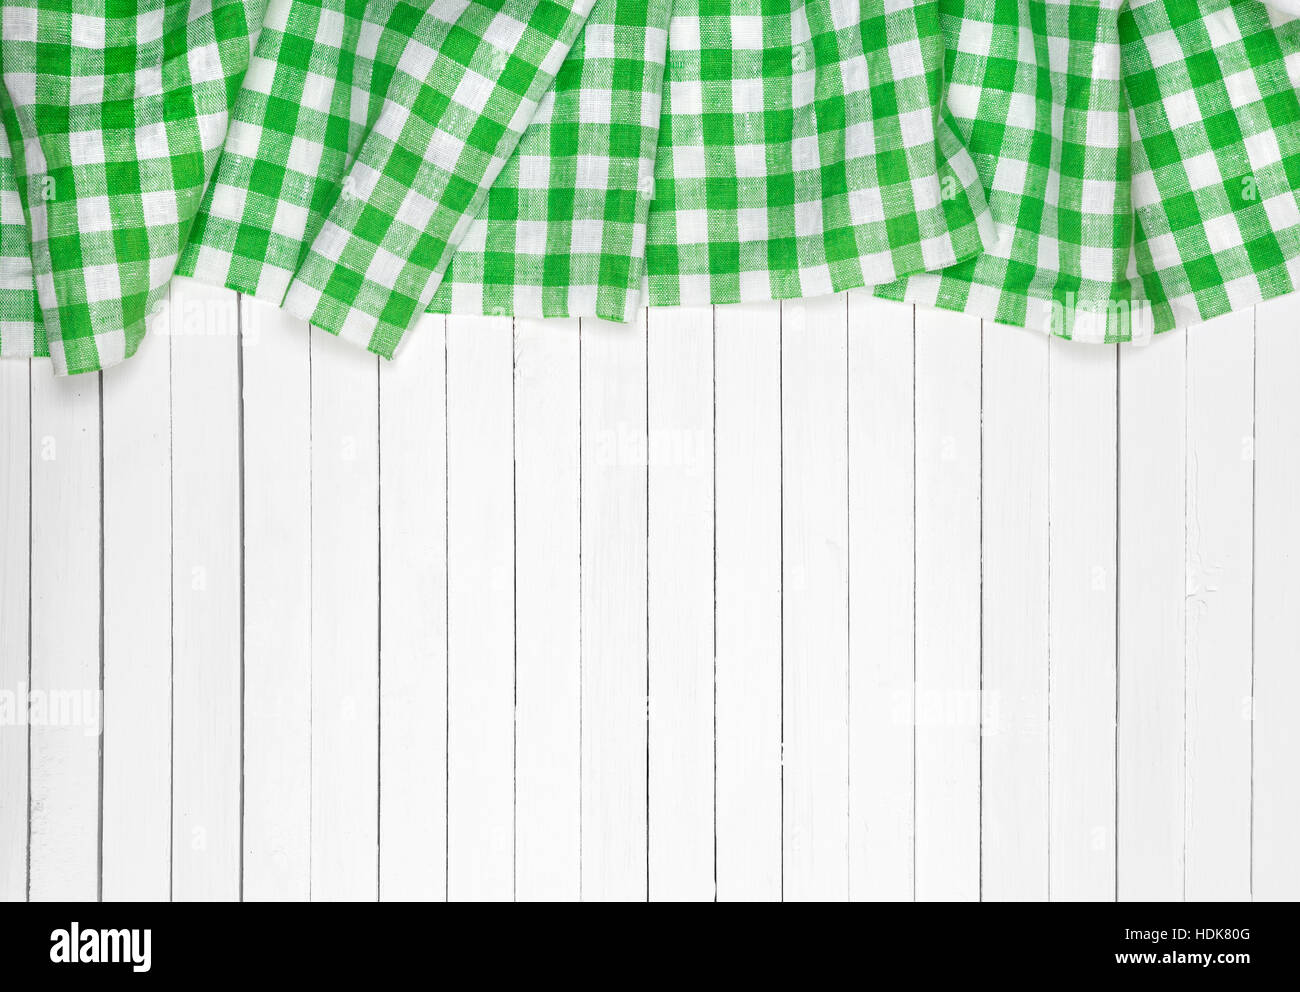 Awesome Green Checkered Tablecloth On Wooden Table, Top View